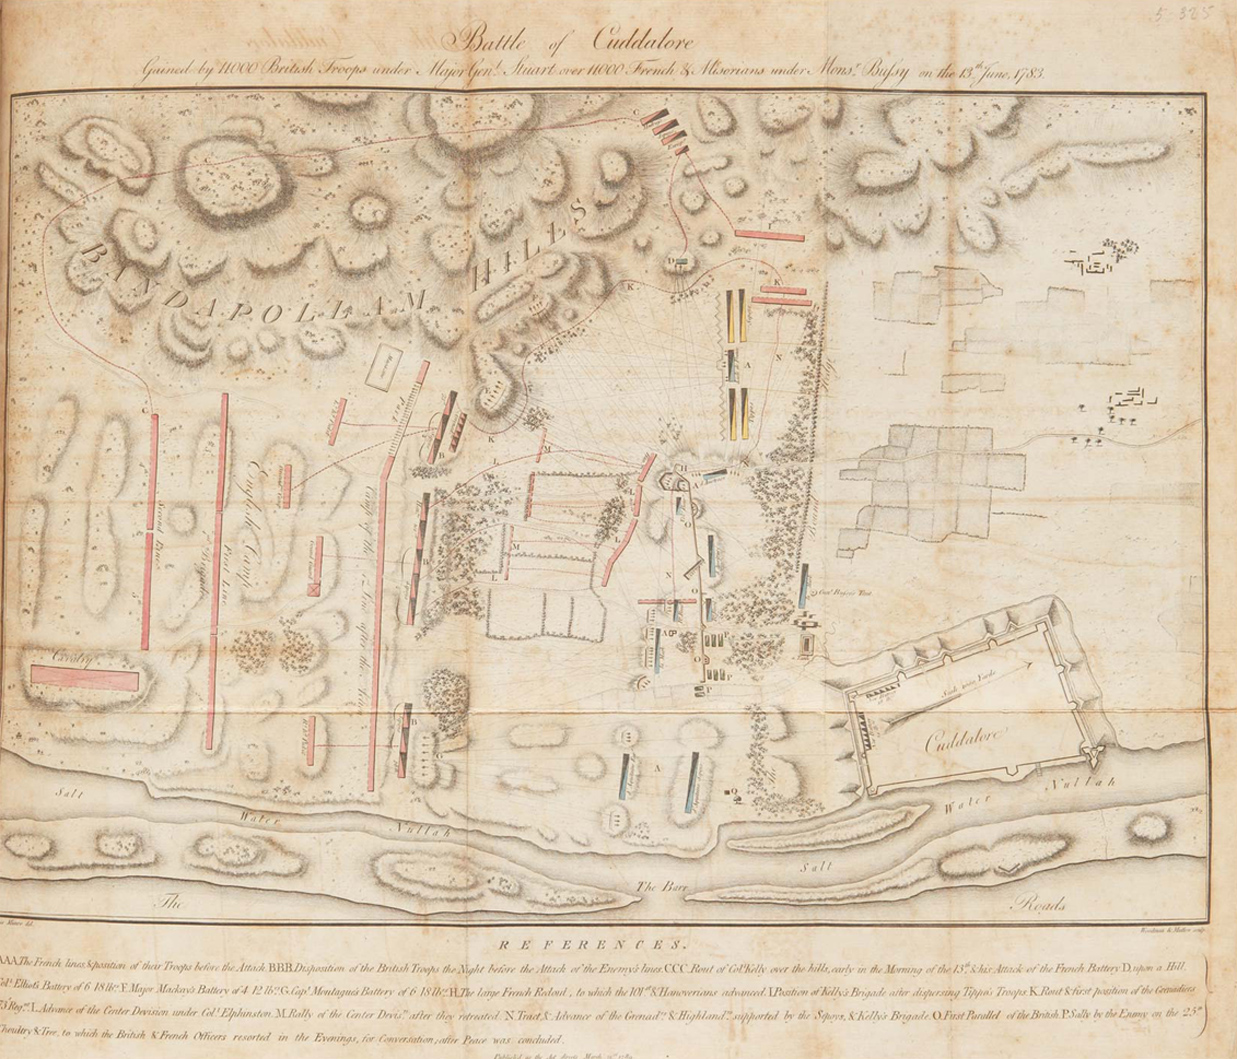 Old map of the battle of Coromandel